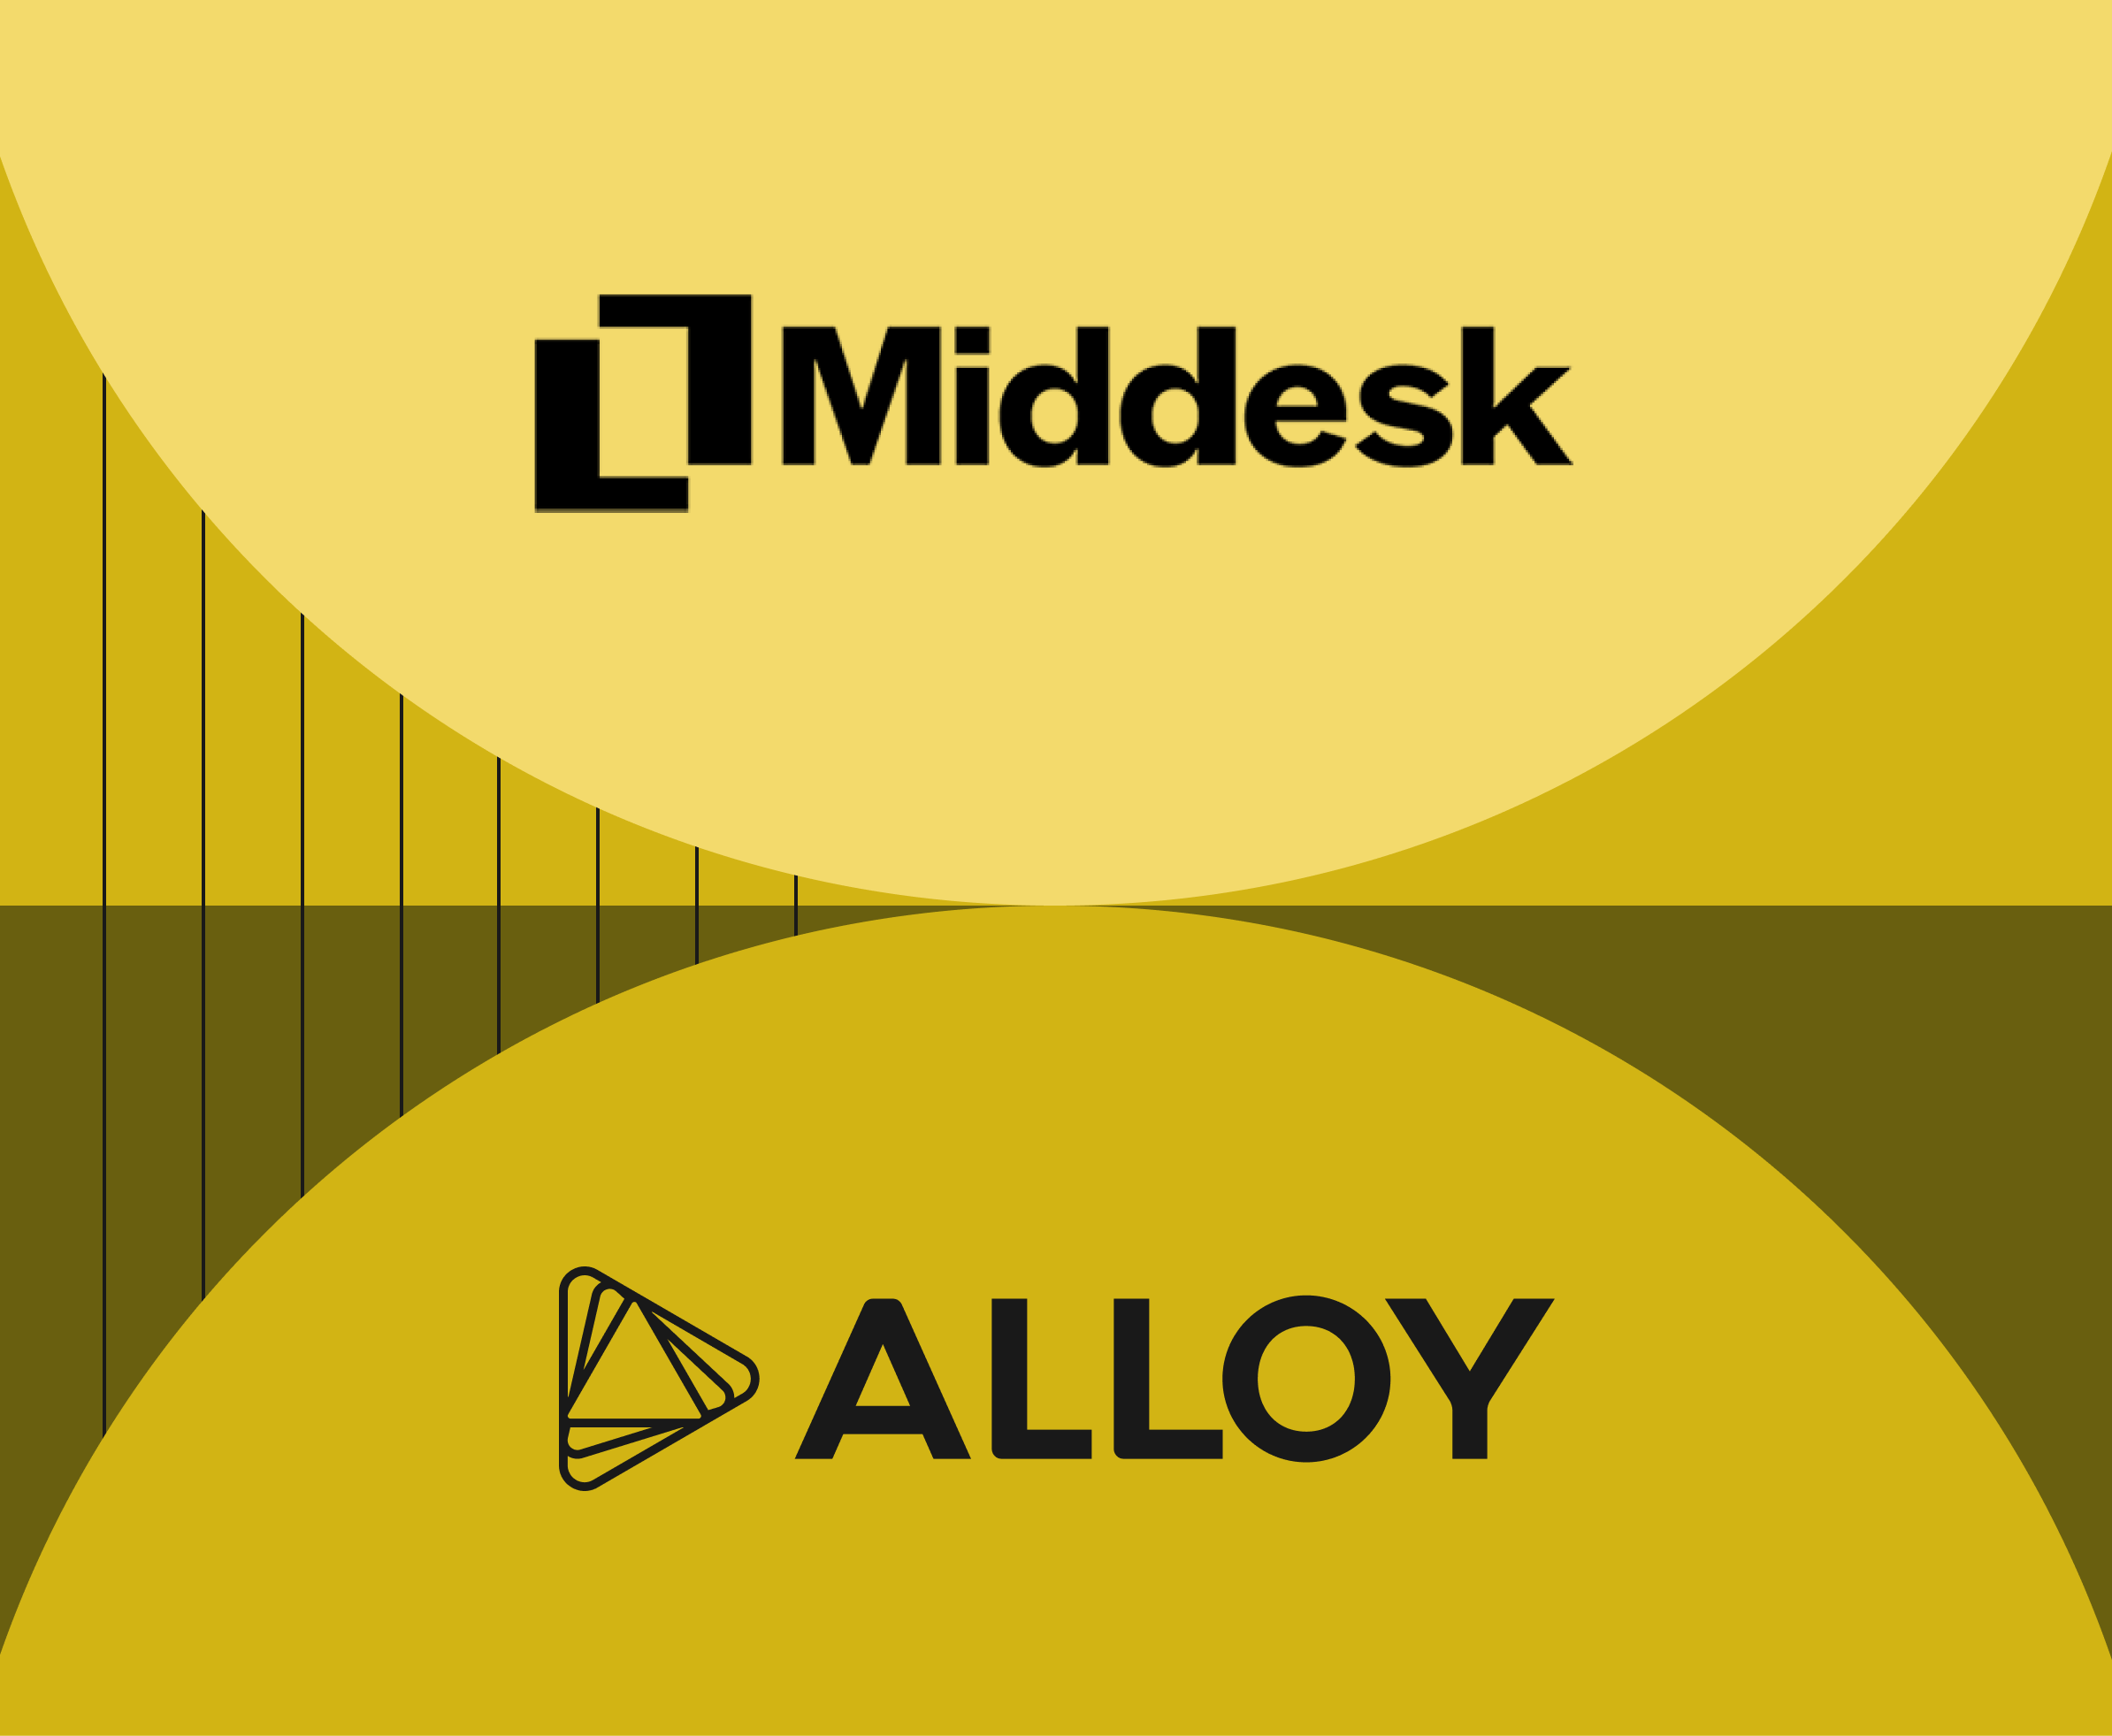 How alloy middesk supported sba